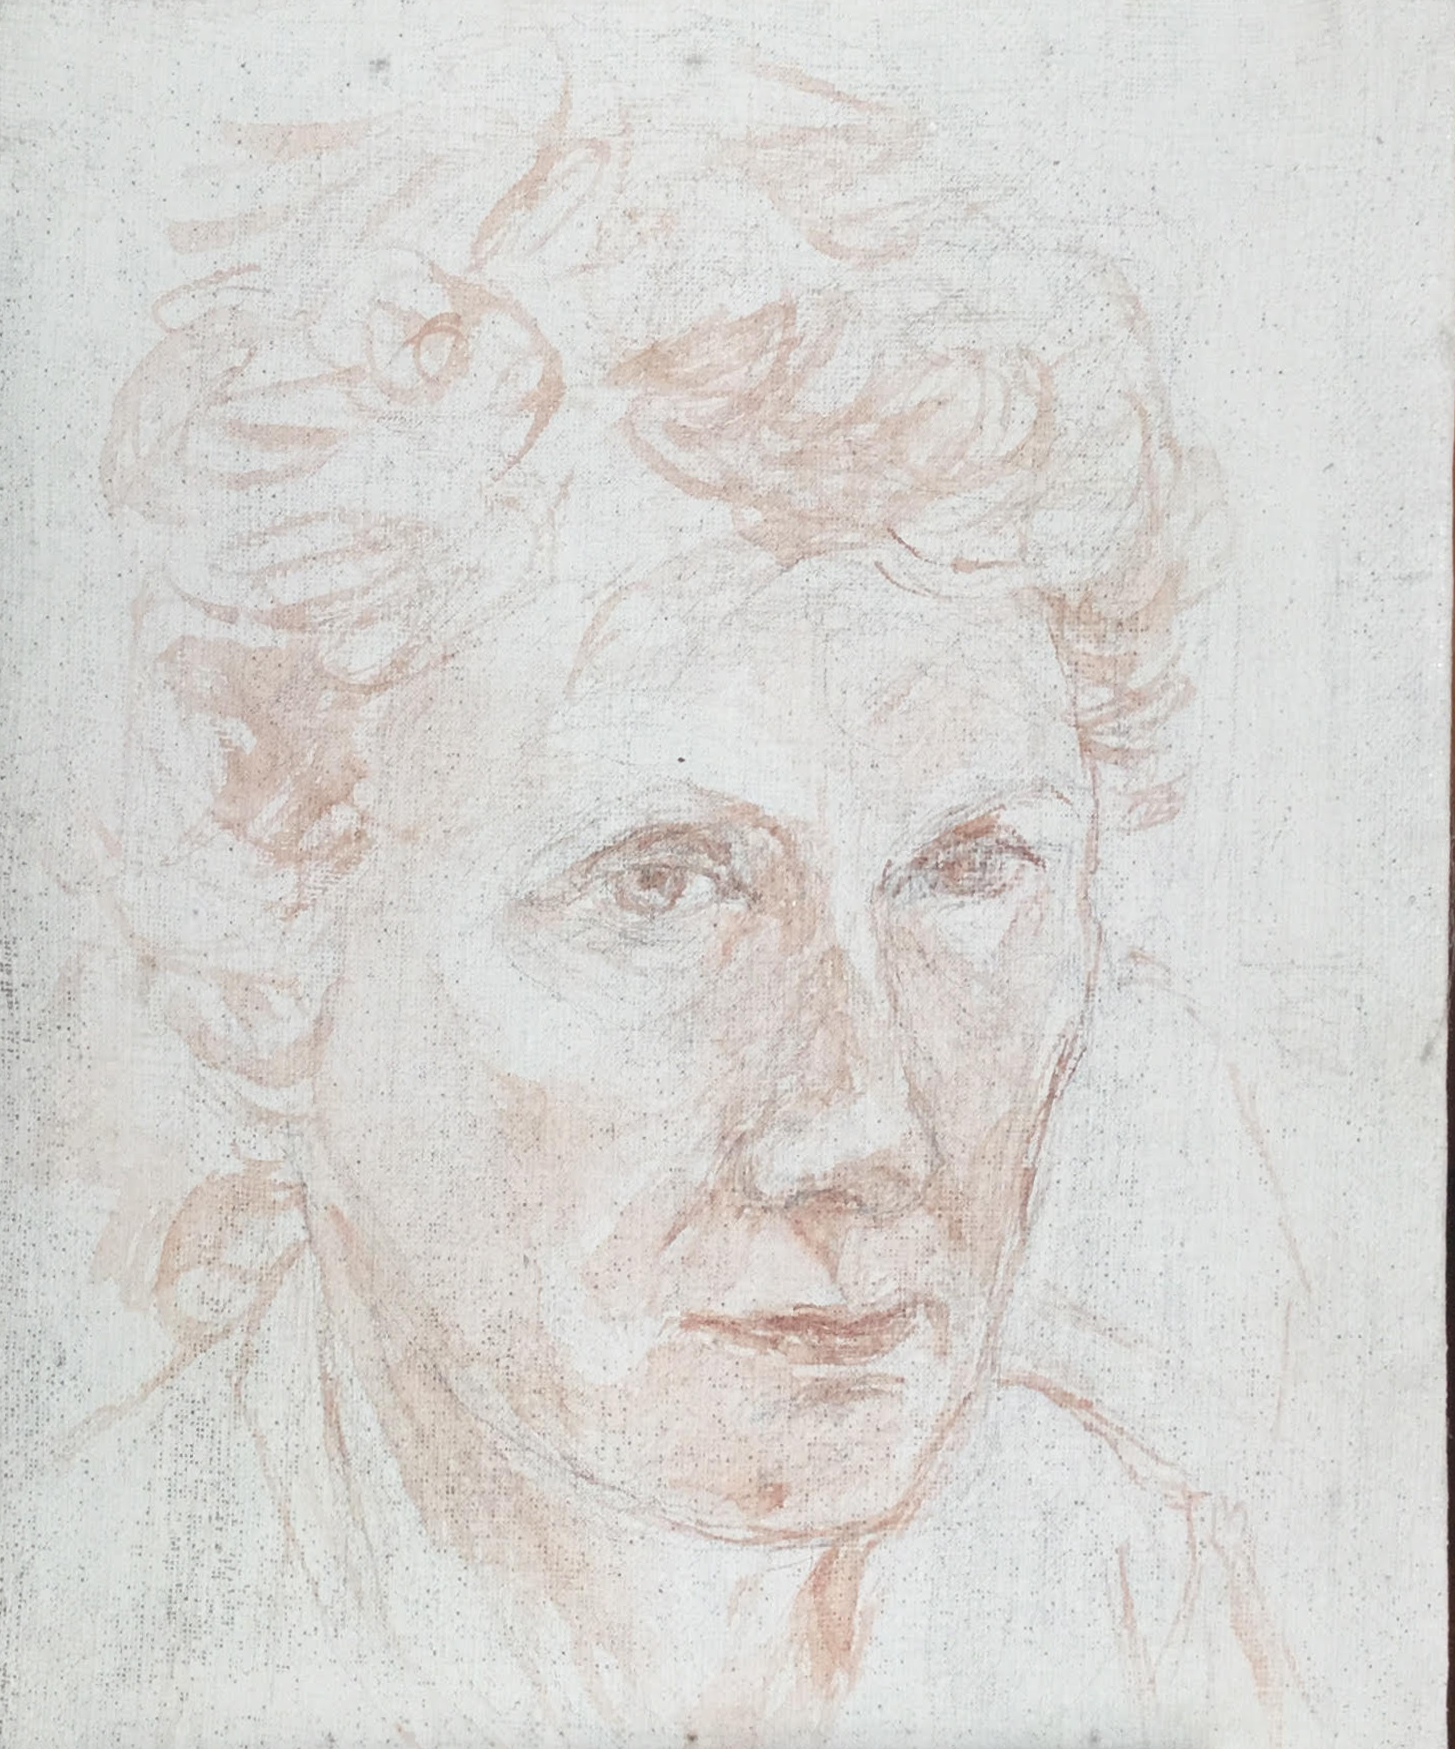 Portret siostry